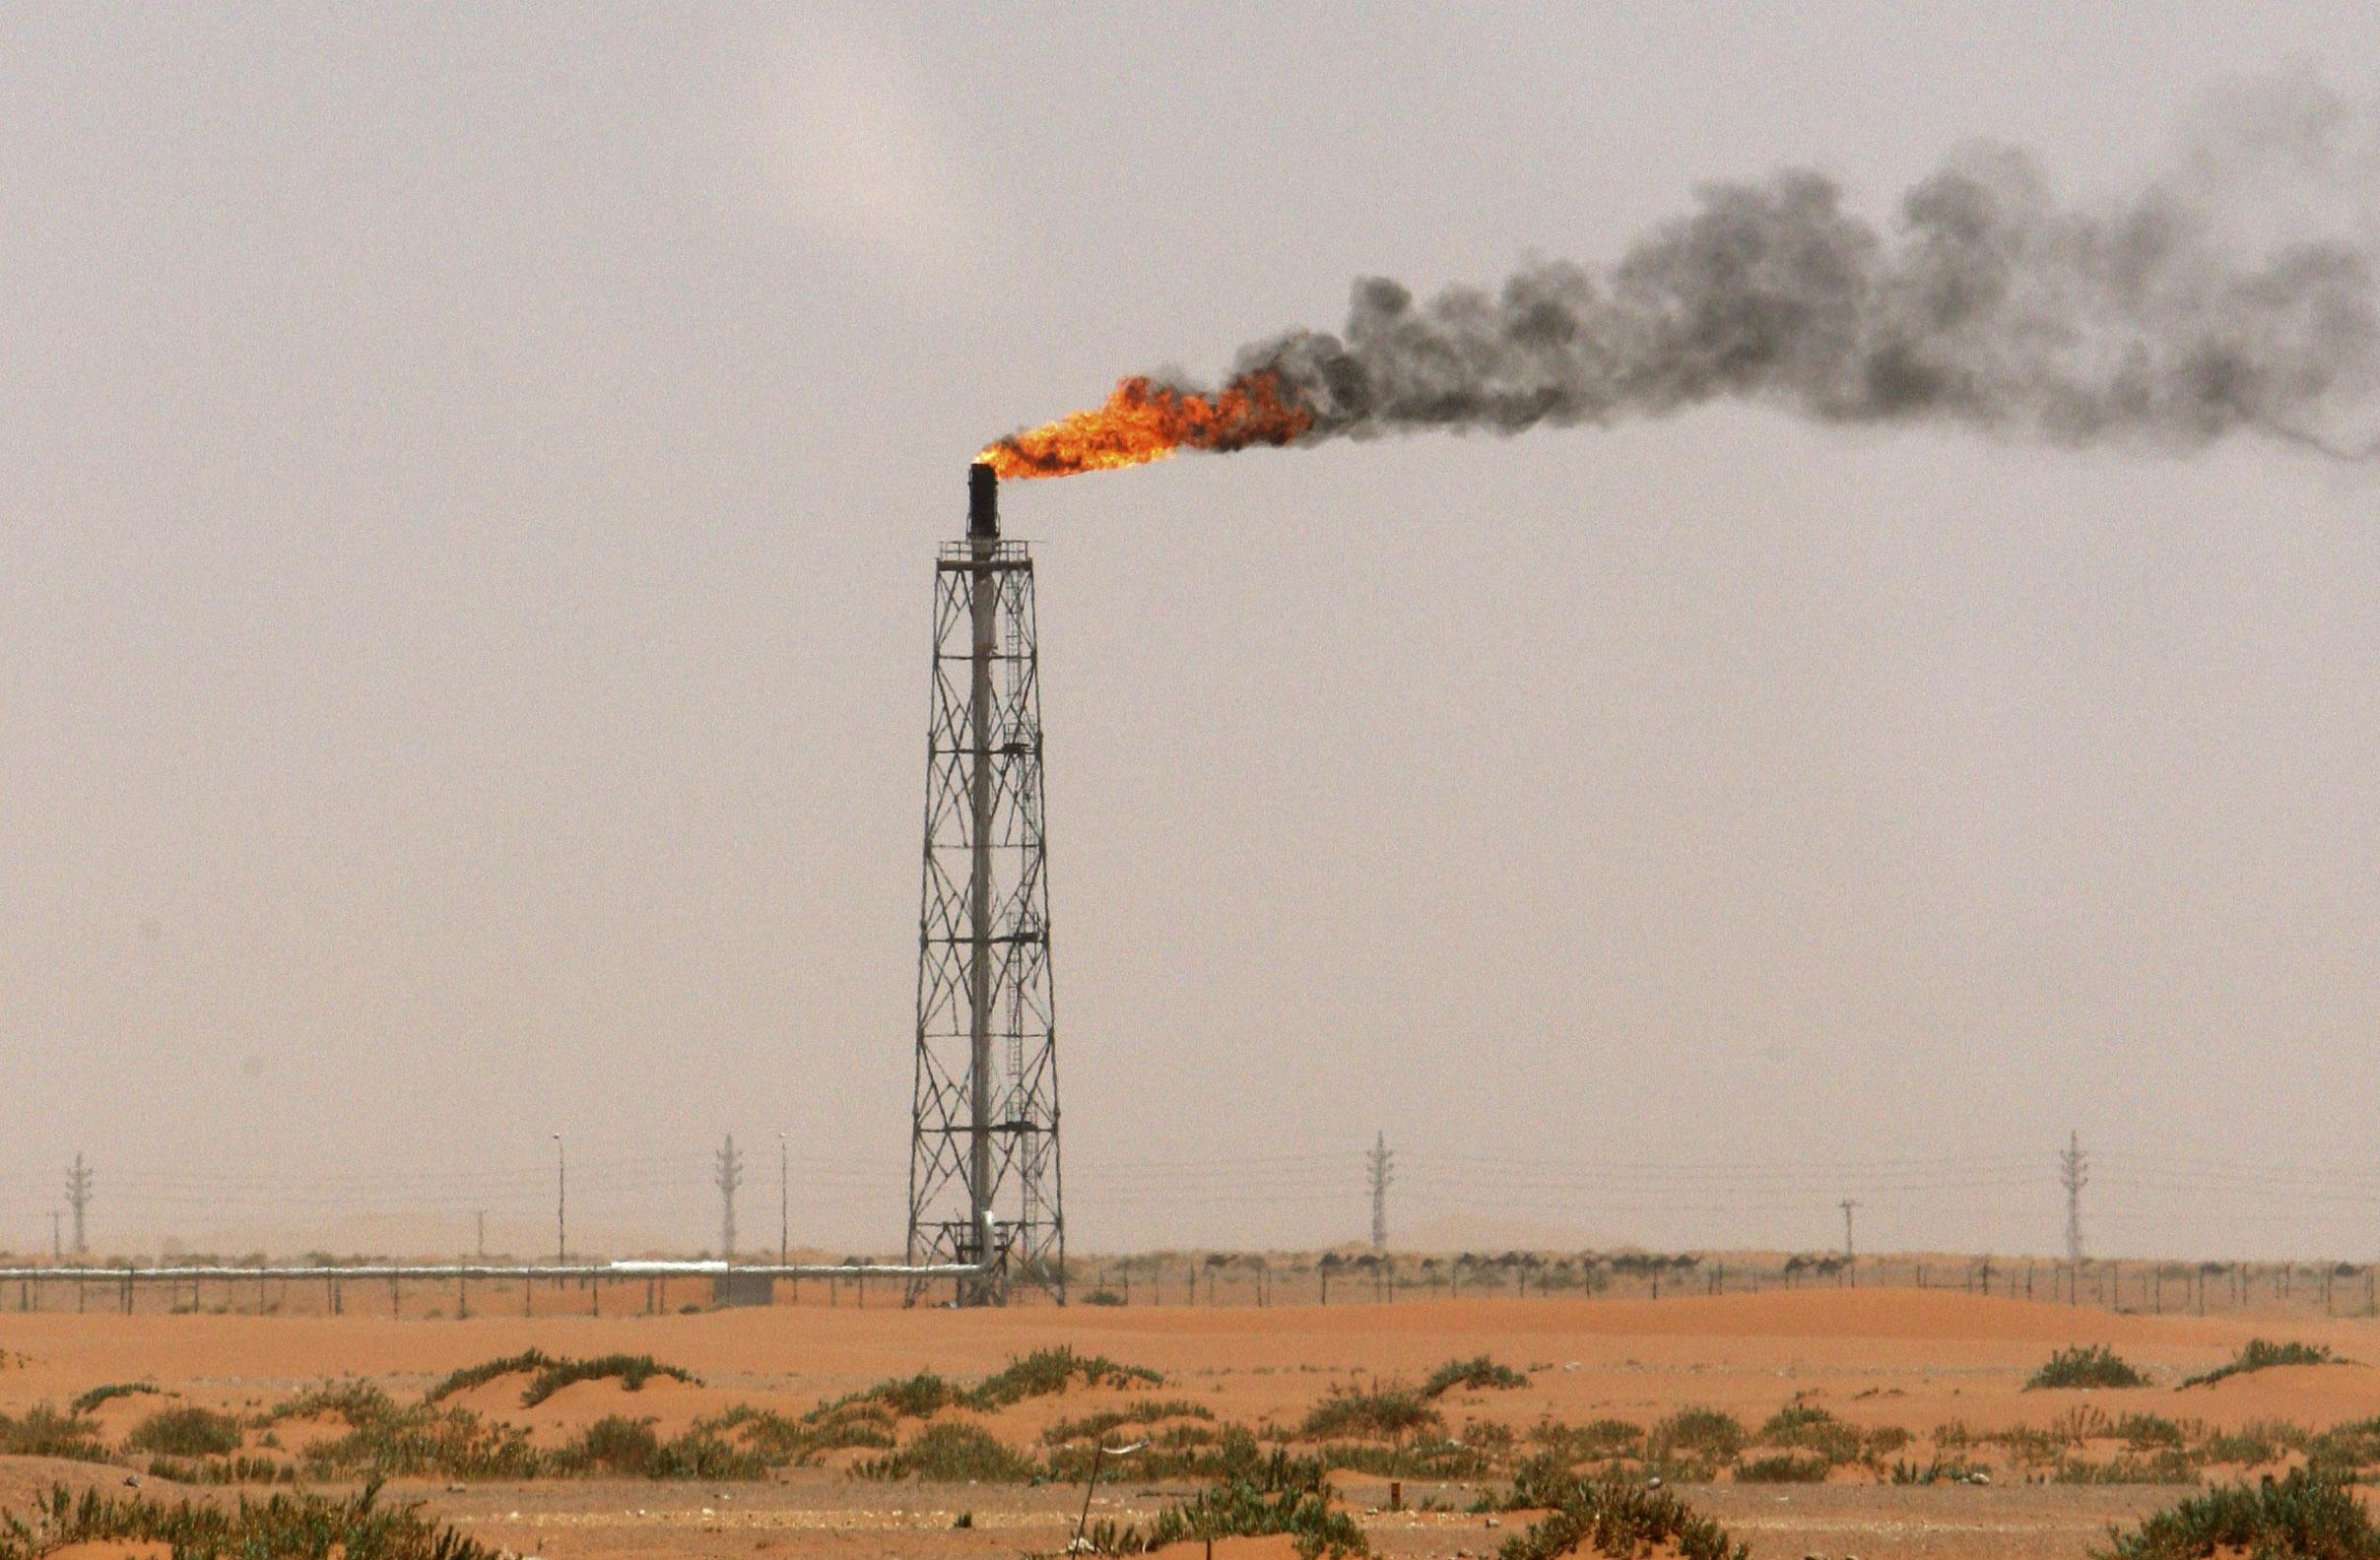 A Saudi Arabian Oilfield